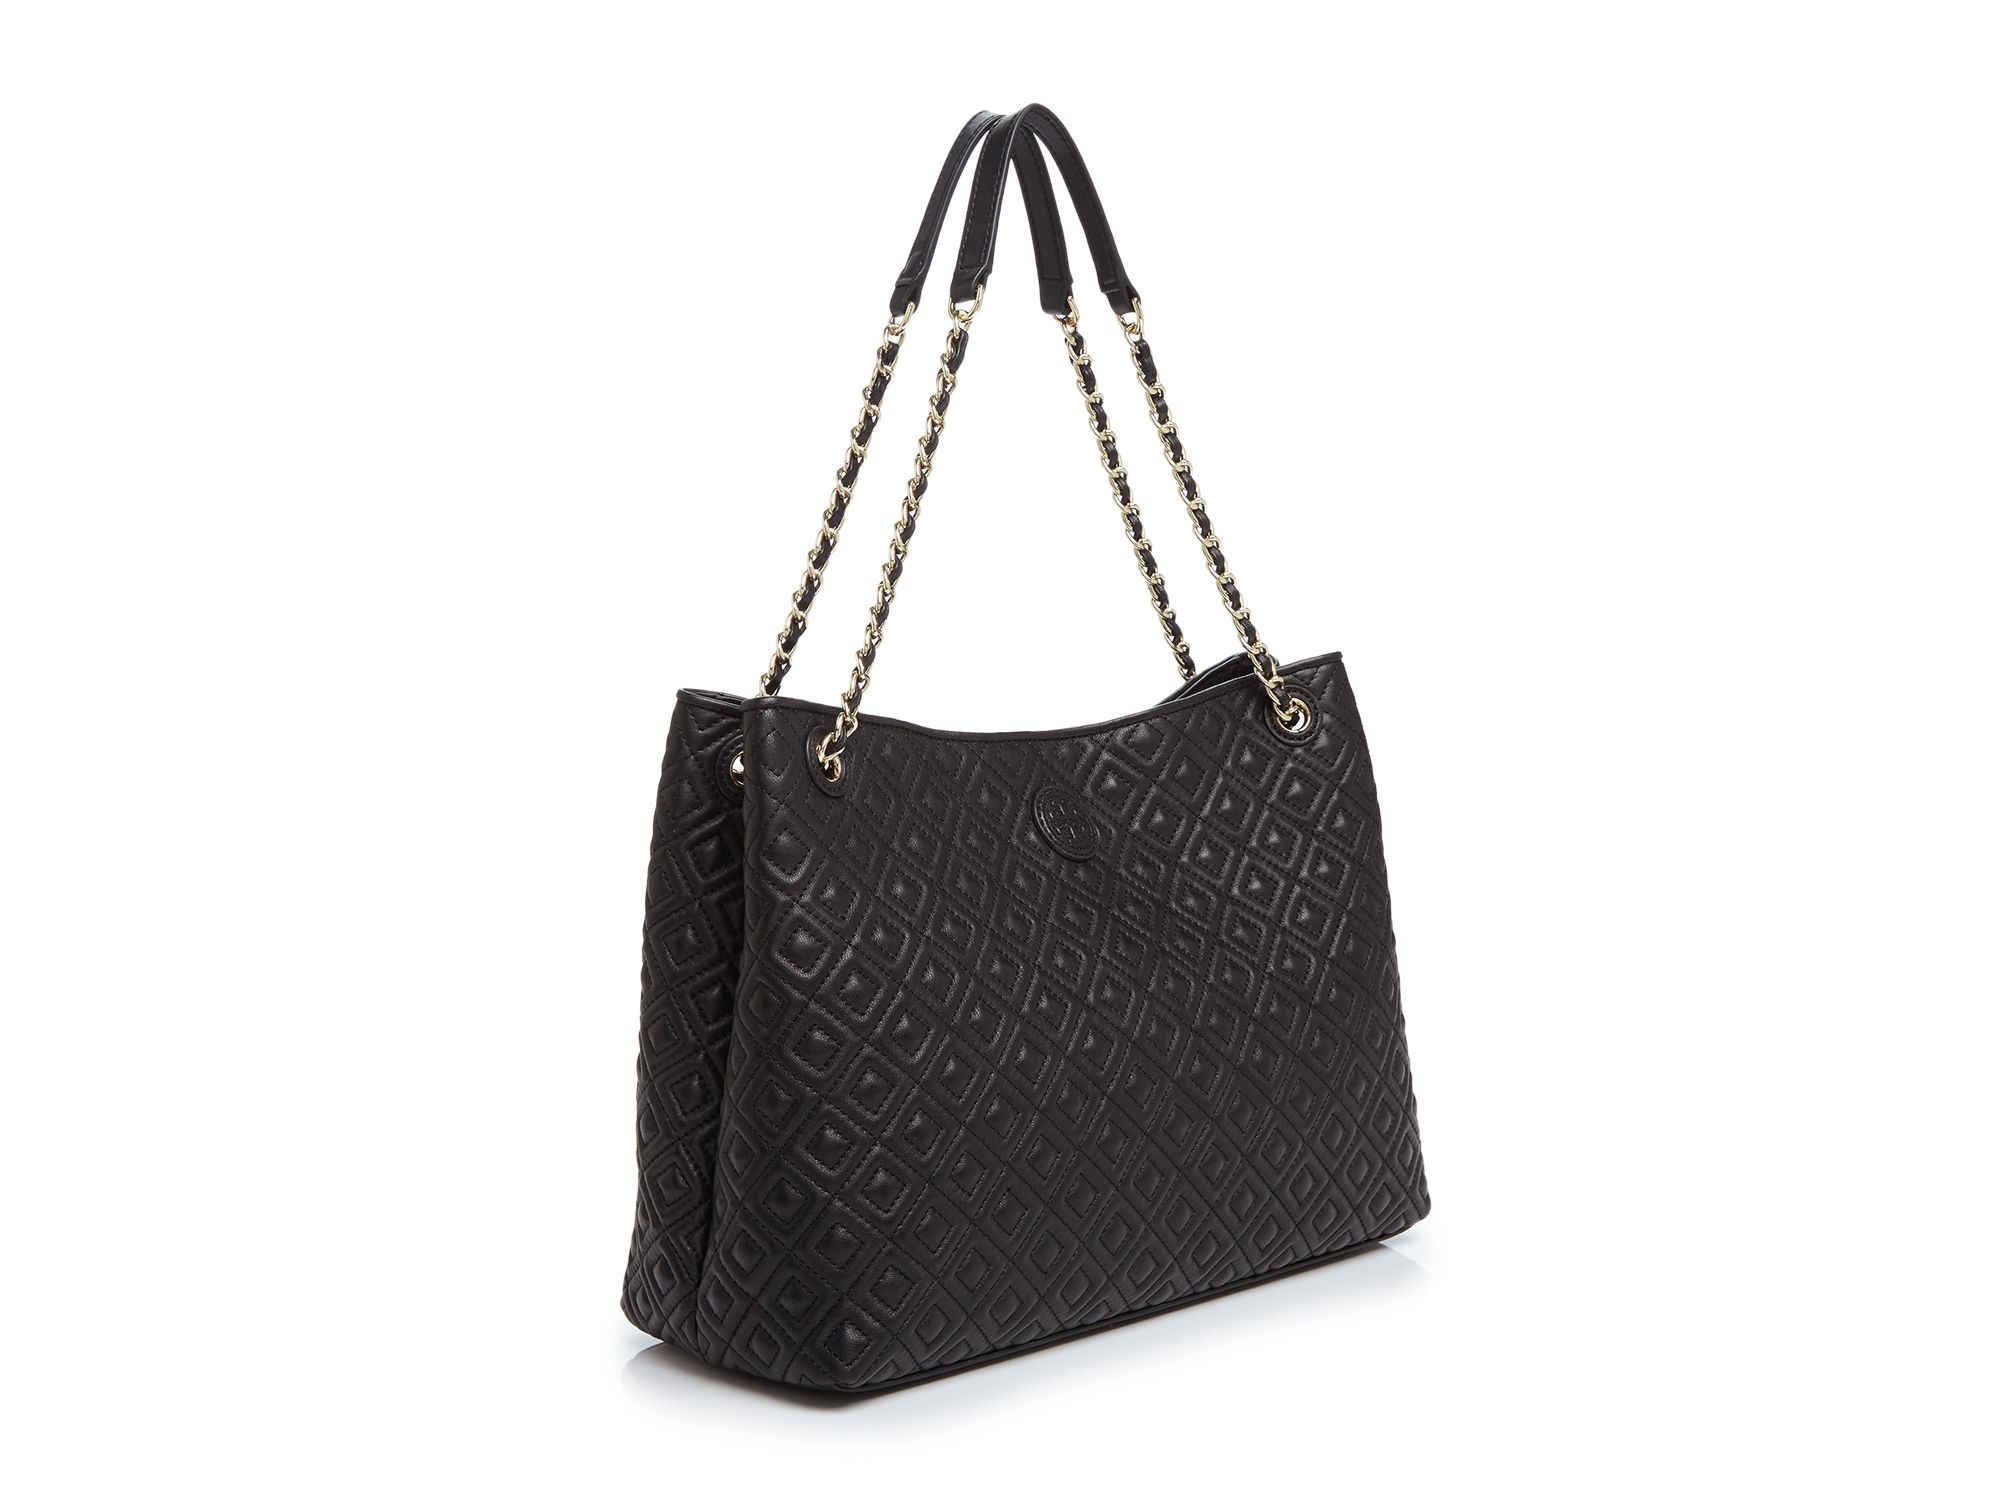 Tory burch Marion Quilted Tote in Black | Lyst : tory burch quilted tote - Adamdwight.com